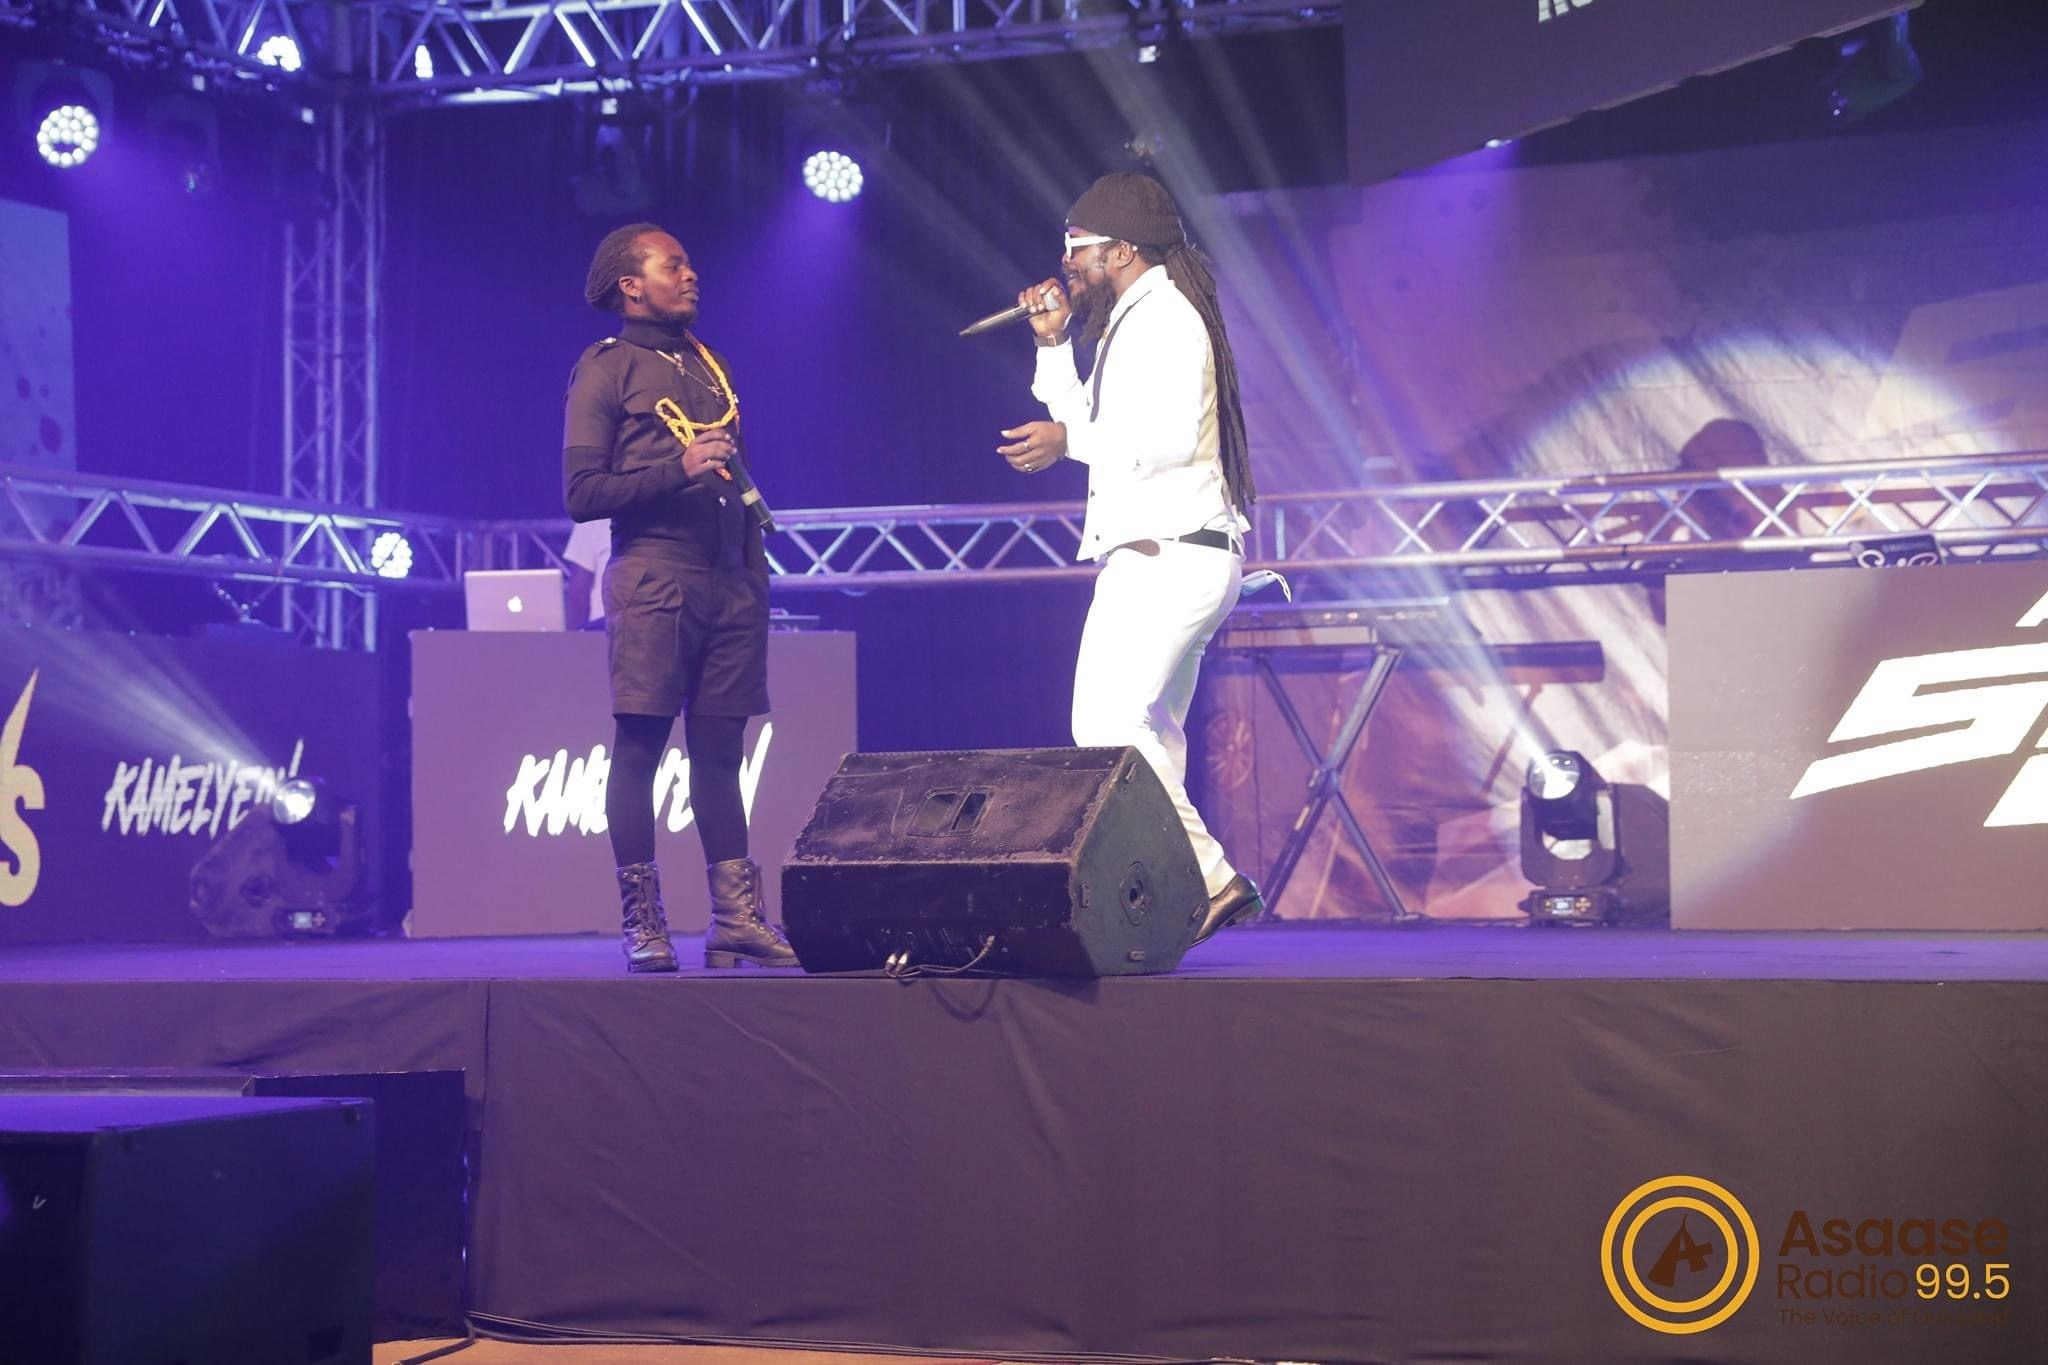 video-watch-the-moment-raskuuku-felt-down-on-stage-while-having-a-clash-with-kamelyeon-at-asaase-radio